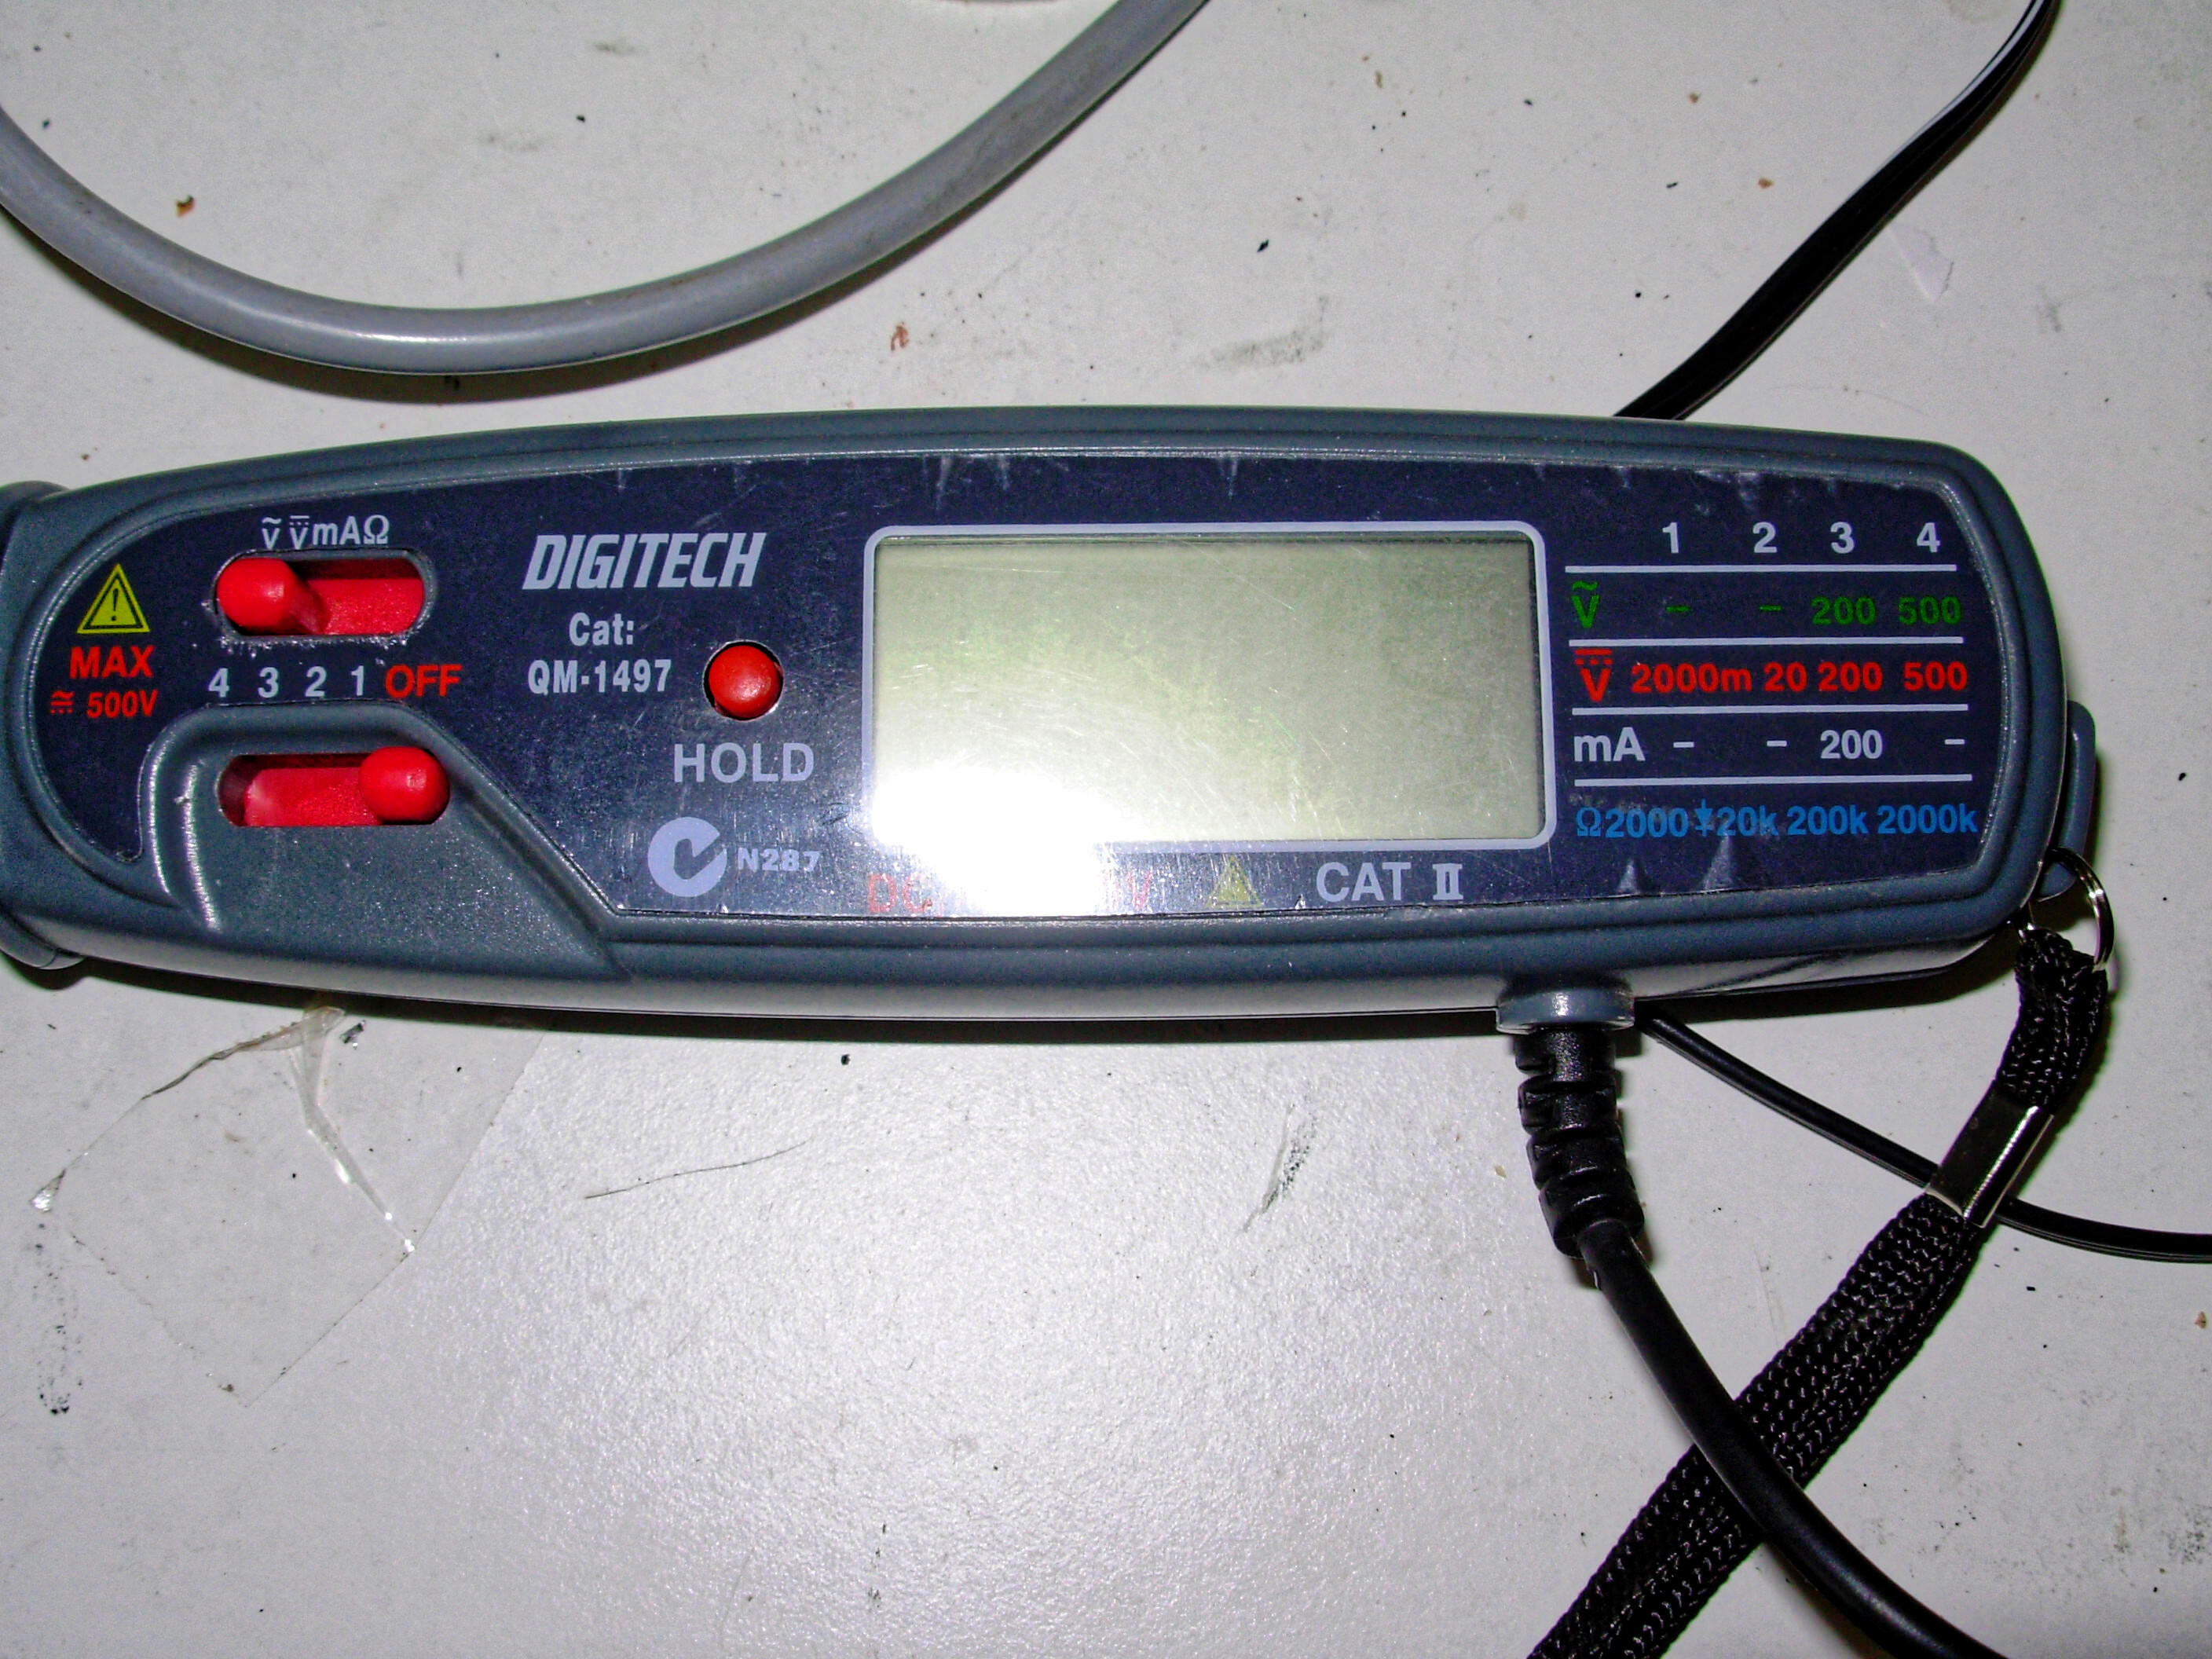 This should be multimeter-3.jpeg.  Is it missing?